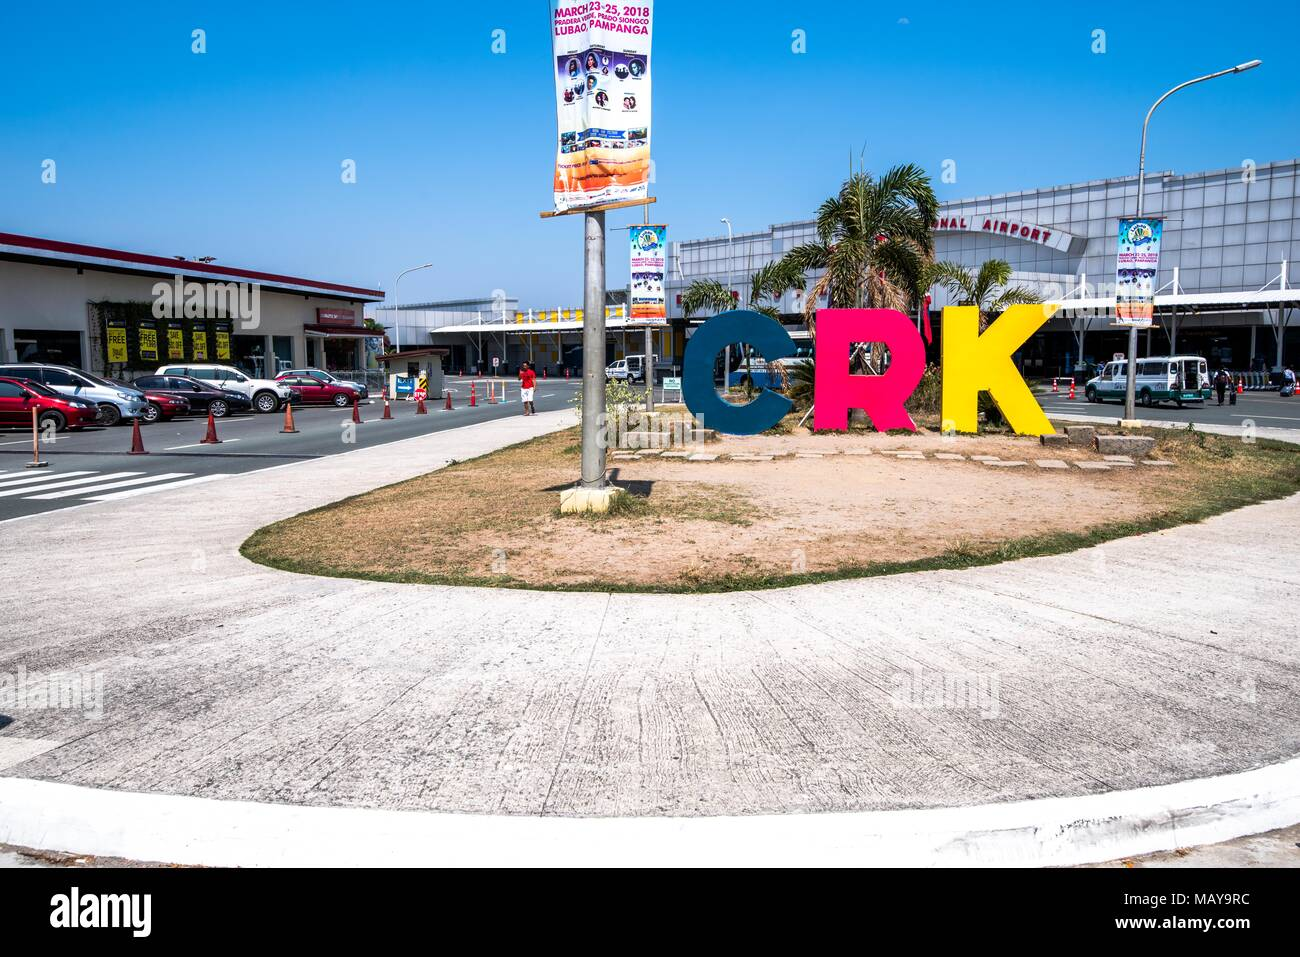 CLARK, PHILIPPINES - Mar 25,2018 Airport Sinage at Clark International Airport, an international gateway to the Philippines within Clark Freeport Zone - Stock Image